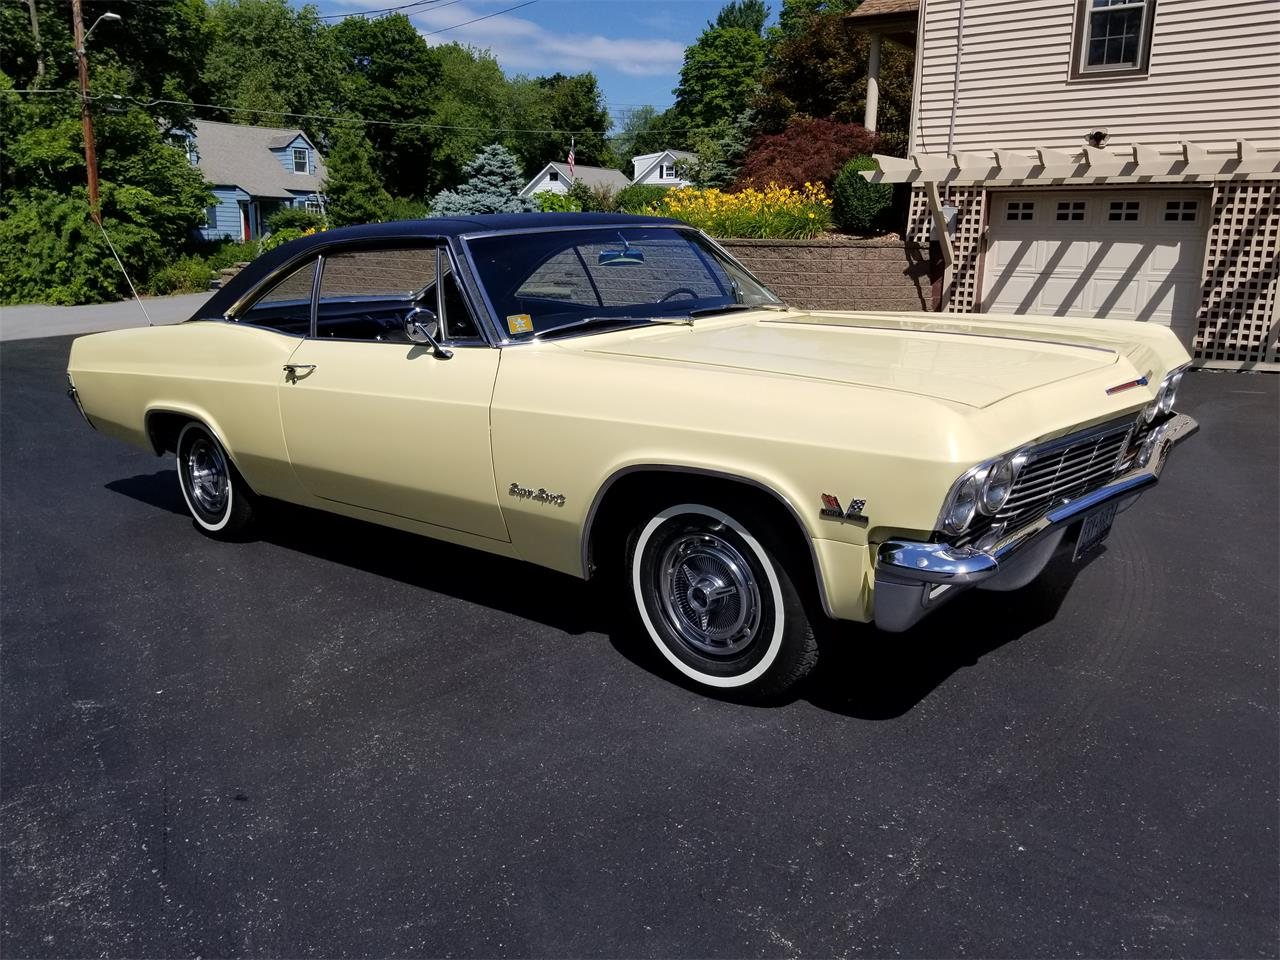 1965 Chevrolet Impala SS (CC-1236414) for sale in Mill Hall, Pennsylvania